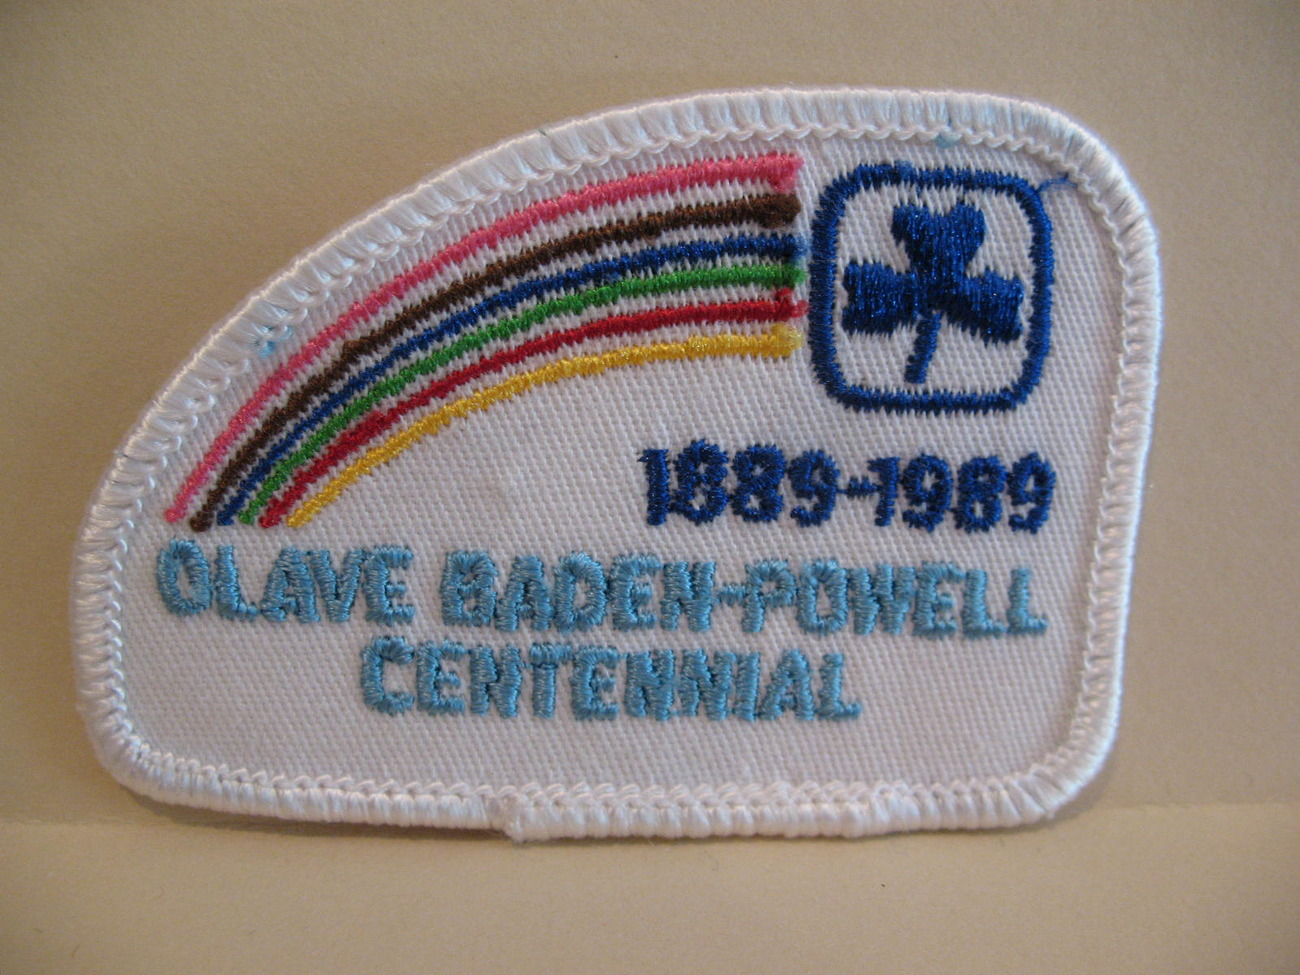 Primary image for Olave Baden Powell Centennial Girl Guides Patch Crest Badge Souvenir Scouts